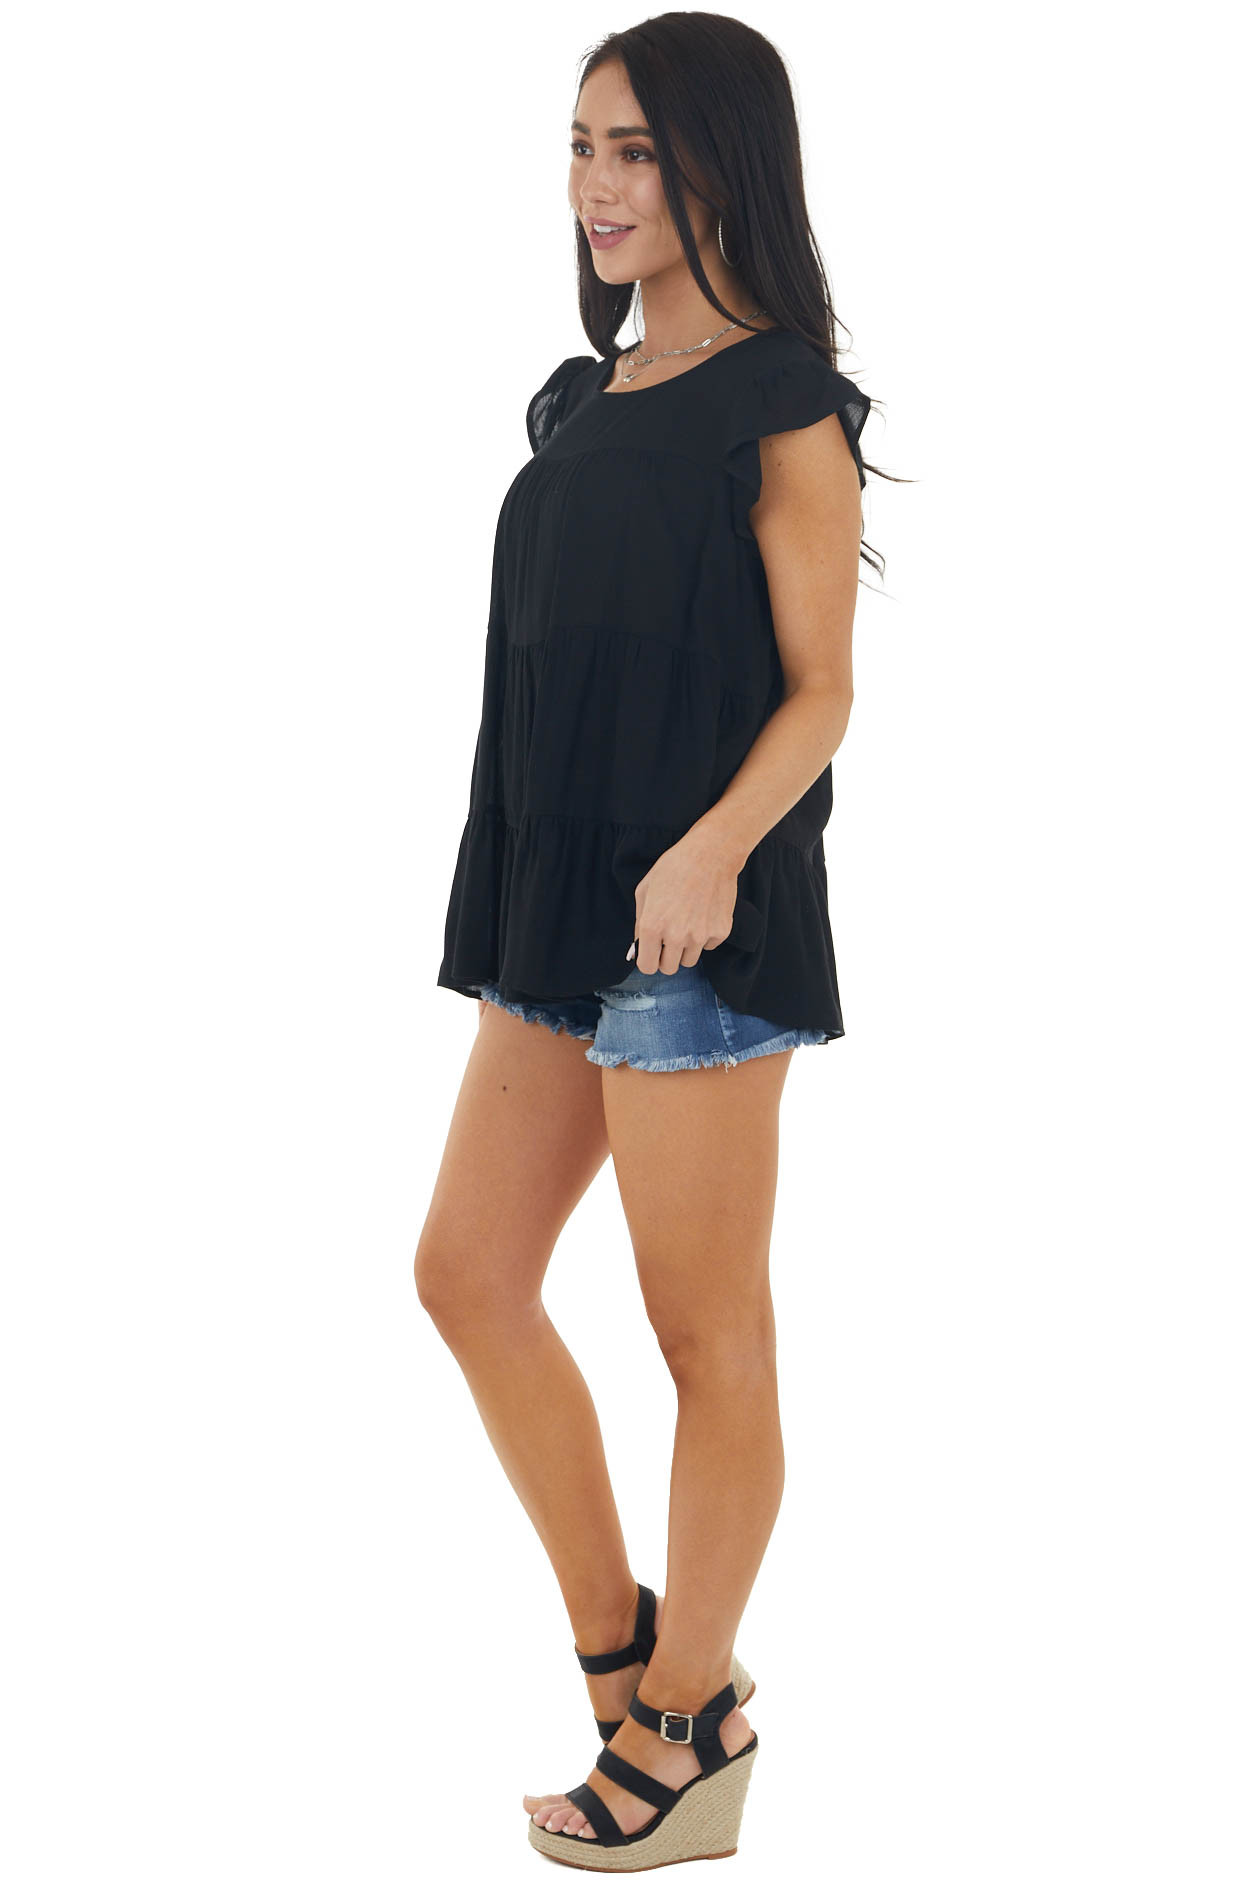 Black Tiered Textured Blouse with Short Flutter Sleeves